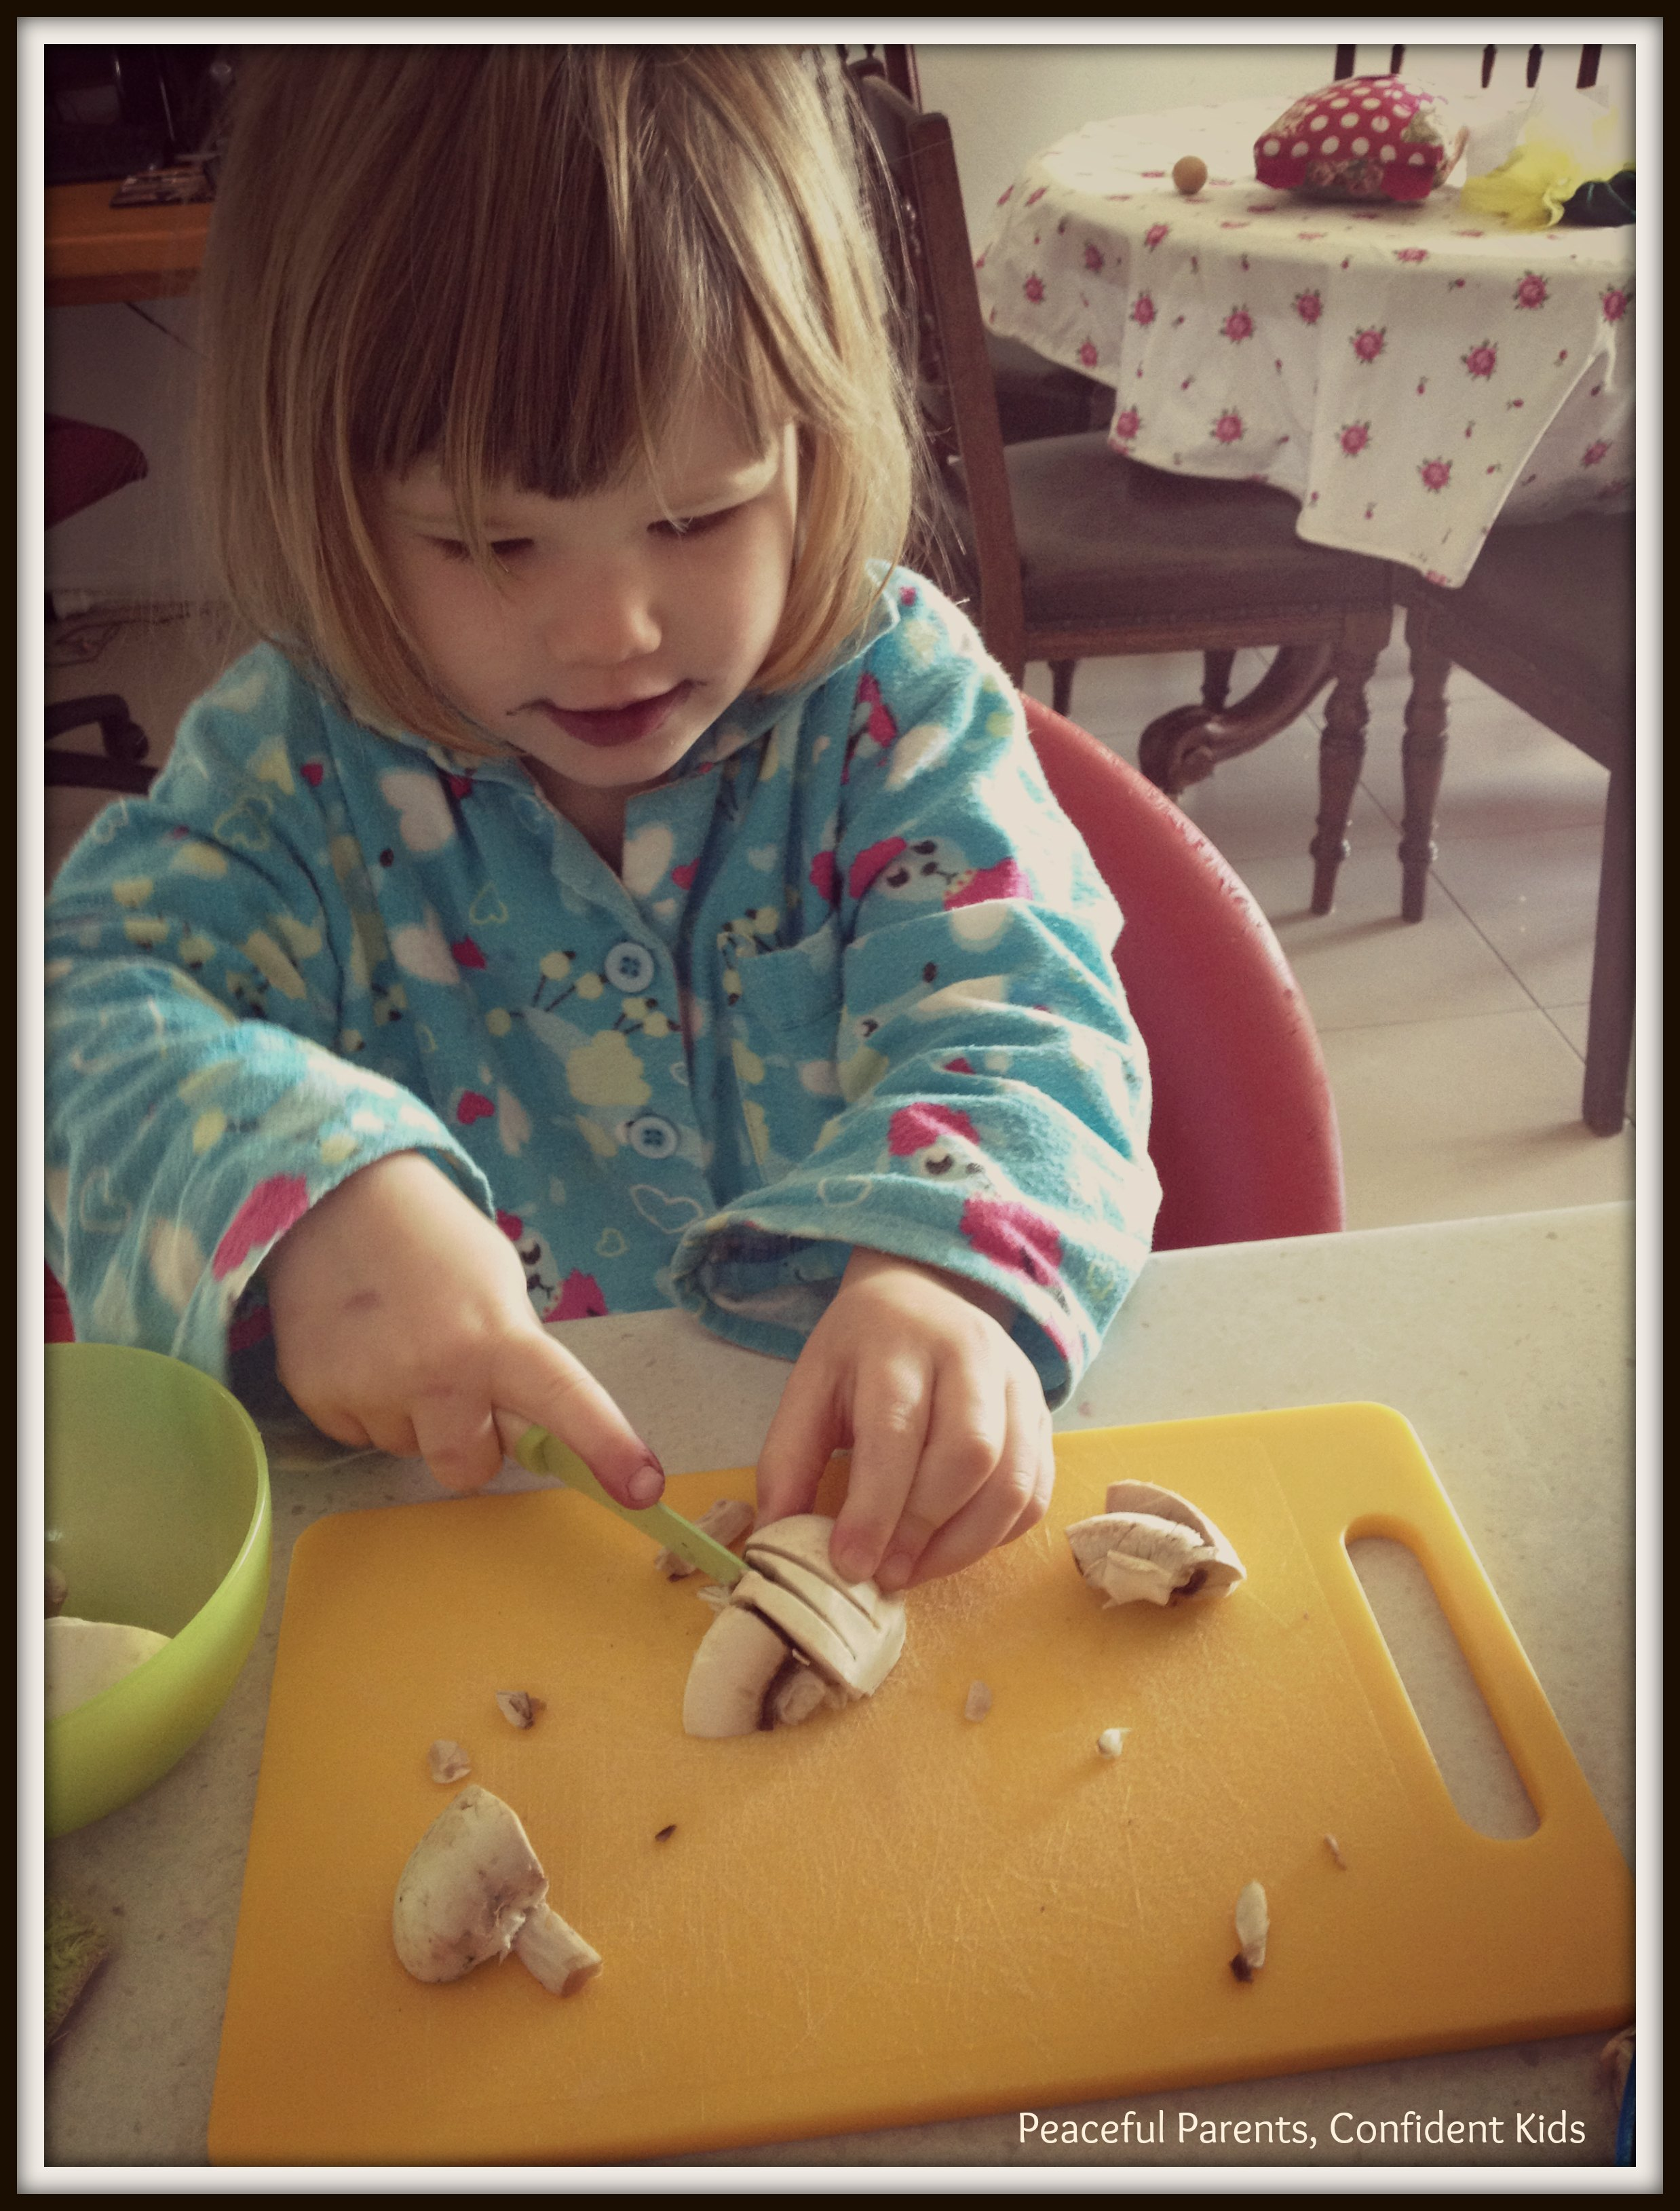 Finding a Peaceful Way to Prepare Dinner - Peaceful Parents, Confident Kids